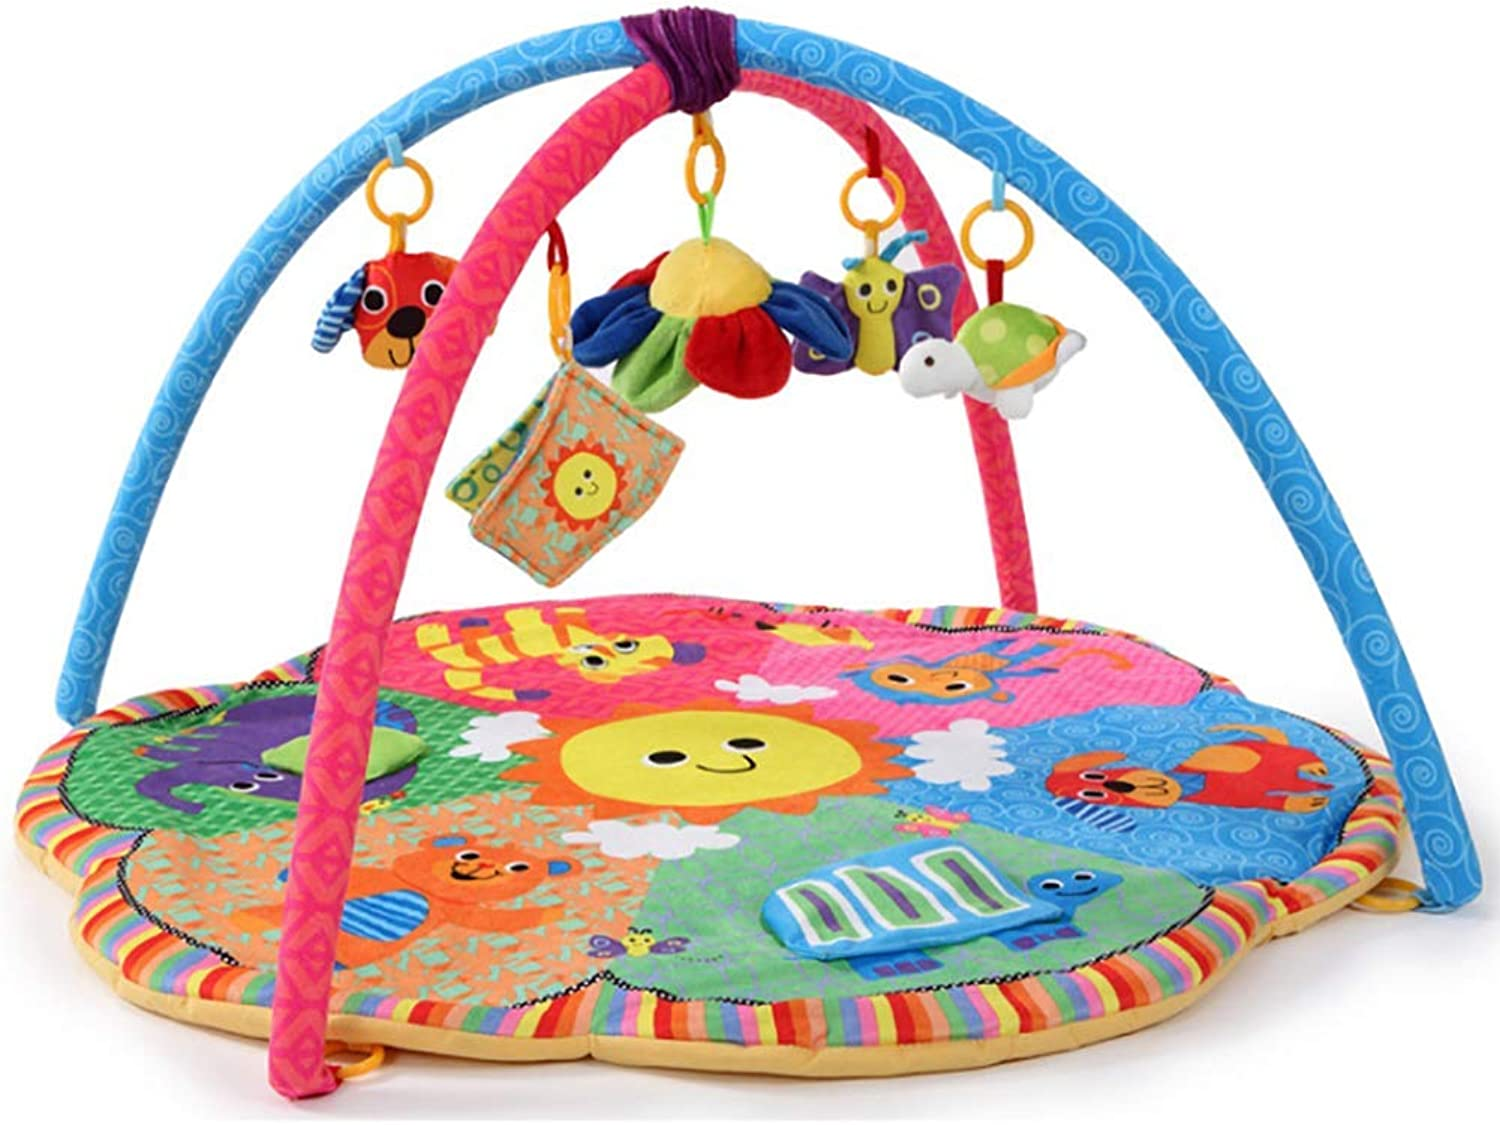 HEXbaby Super Deluxe Activity Gym Play Mat, Classic Animals, NewborntoToddler Play Gym